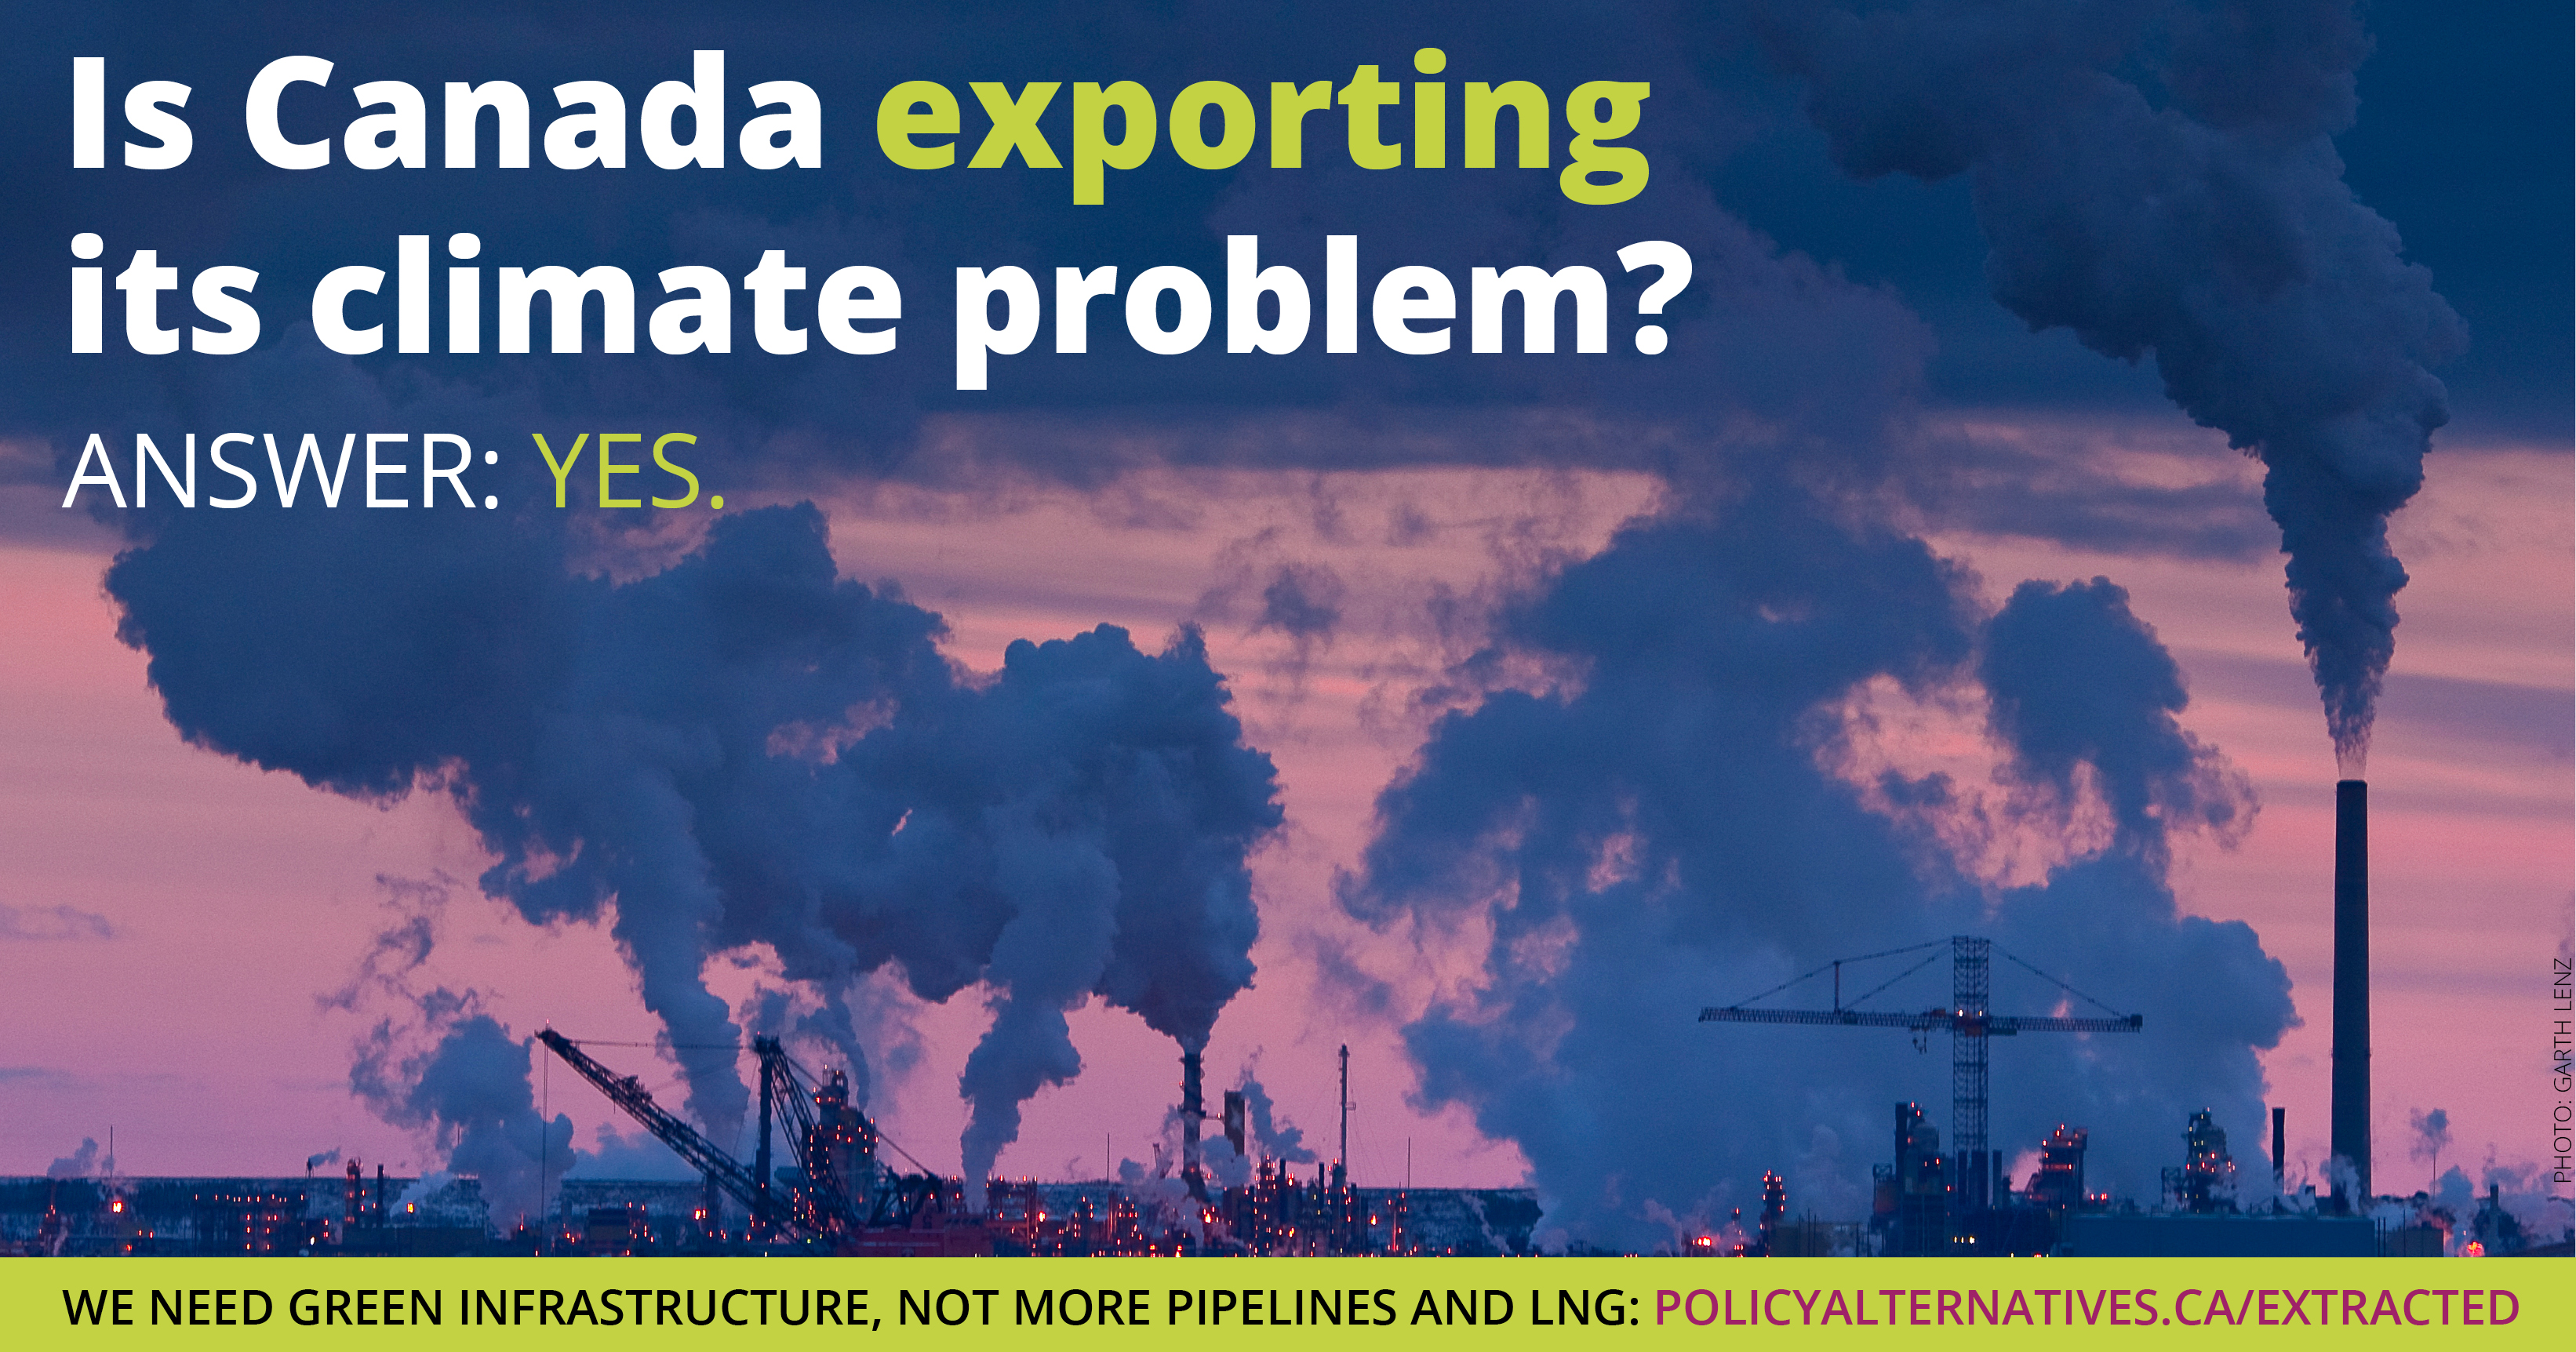 ExtractedCarbon_Shareable